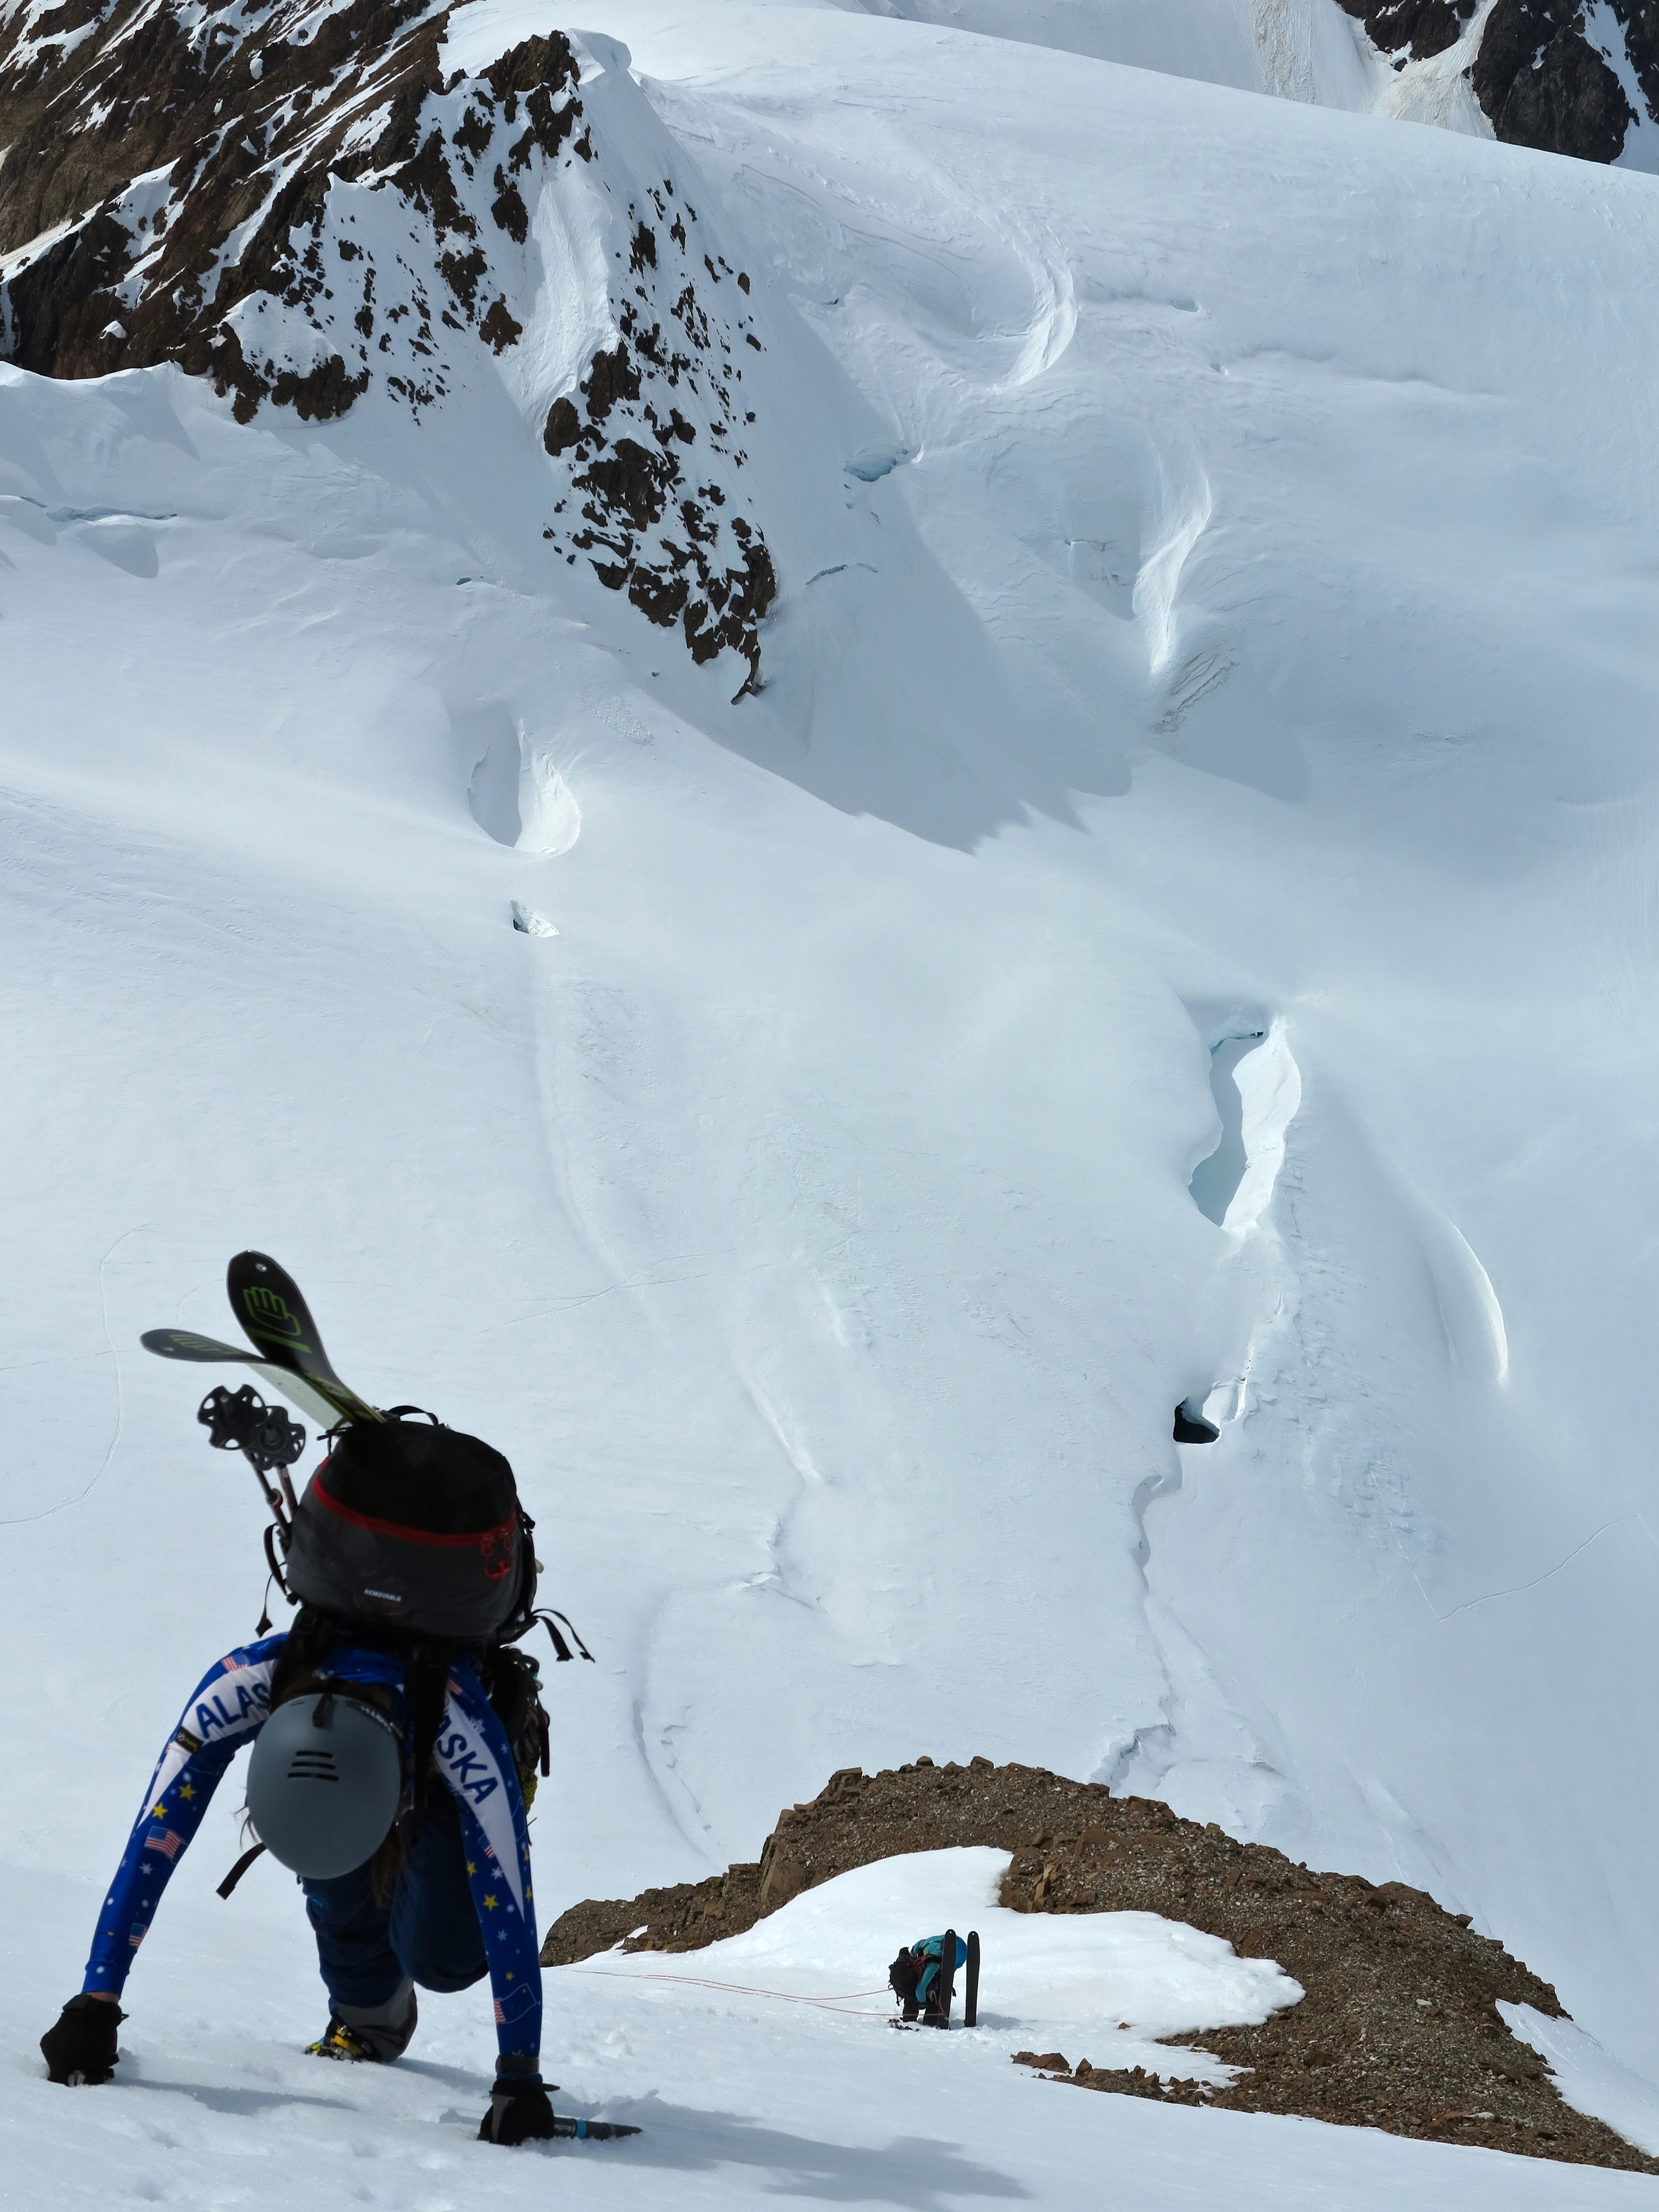 In view from our camp were endless lines. Skin, boot, ski, repeat.